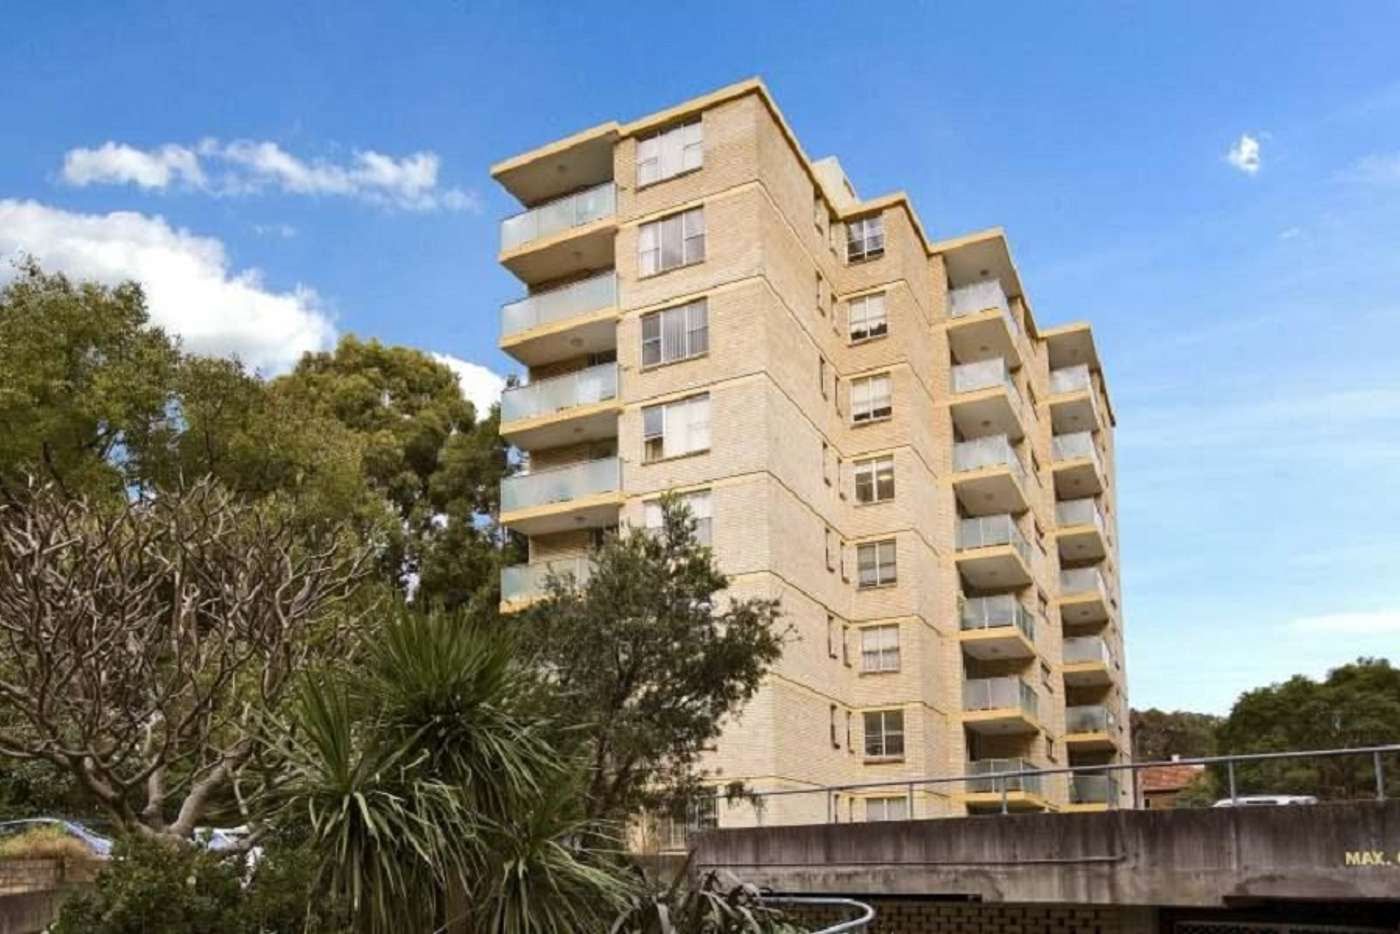 Main view of Homely apartment listing, 19/43-45 Johnson Street, Chatswood NSW 2067